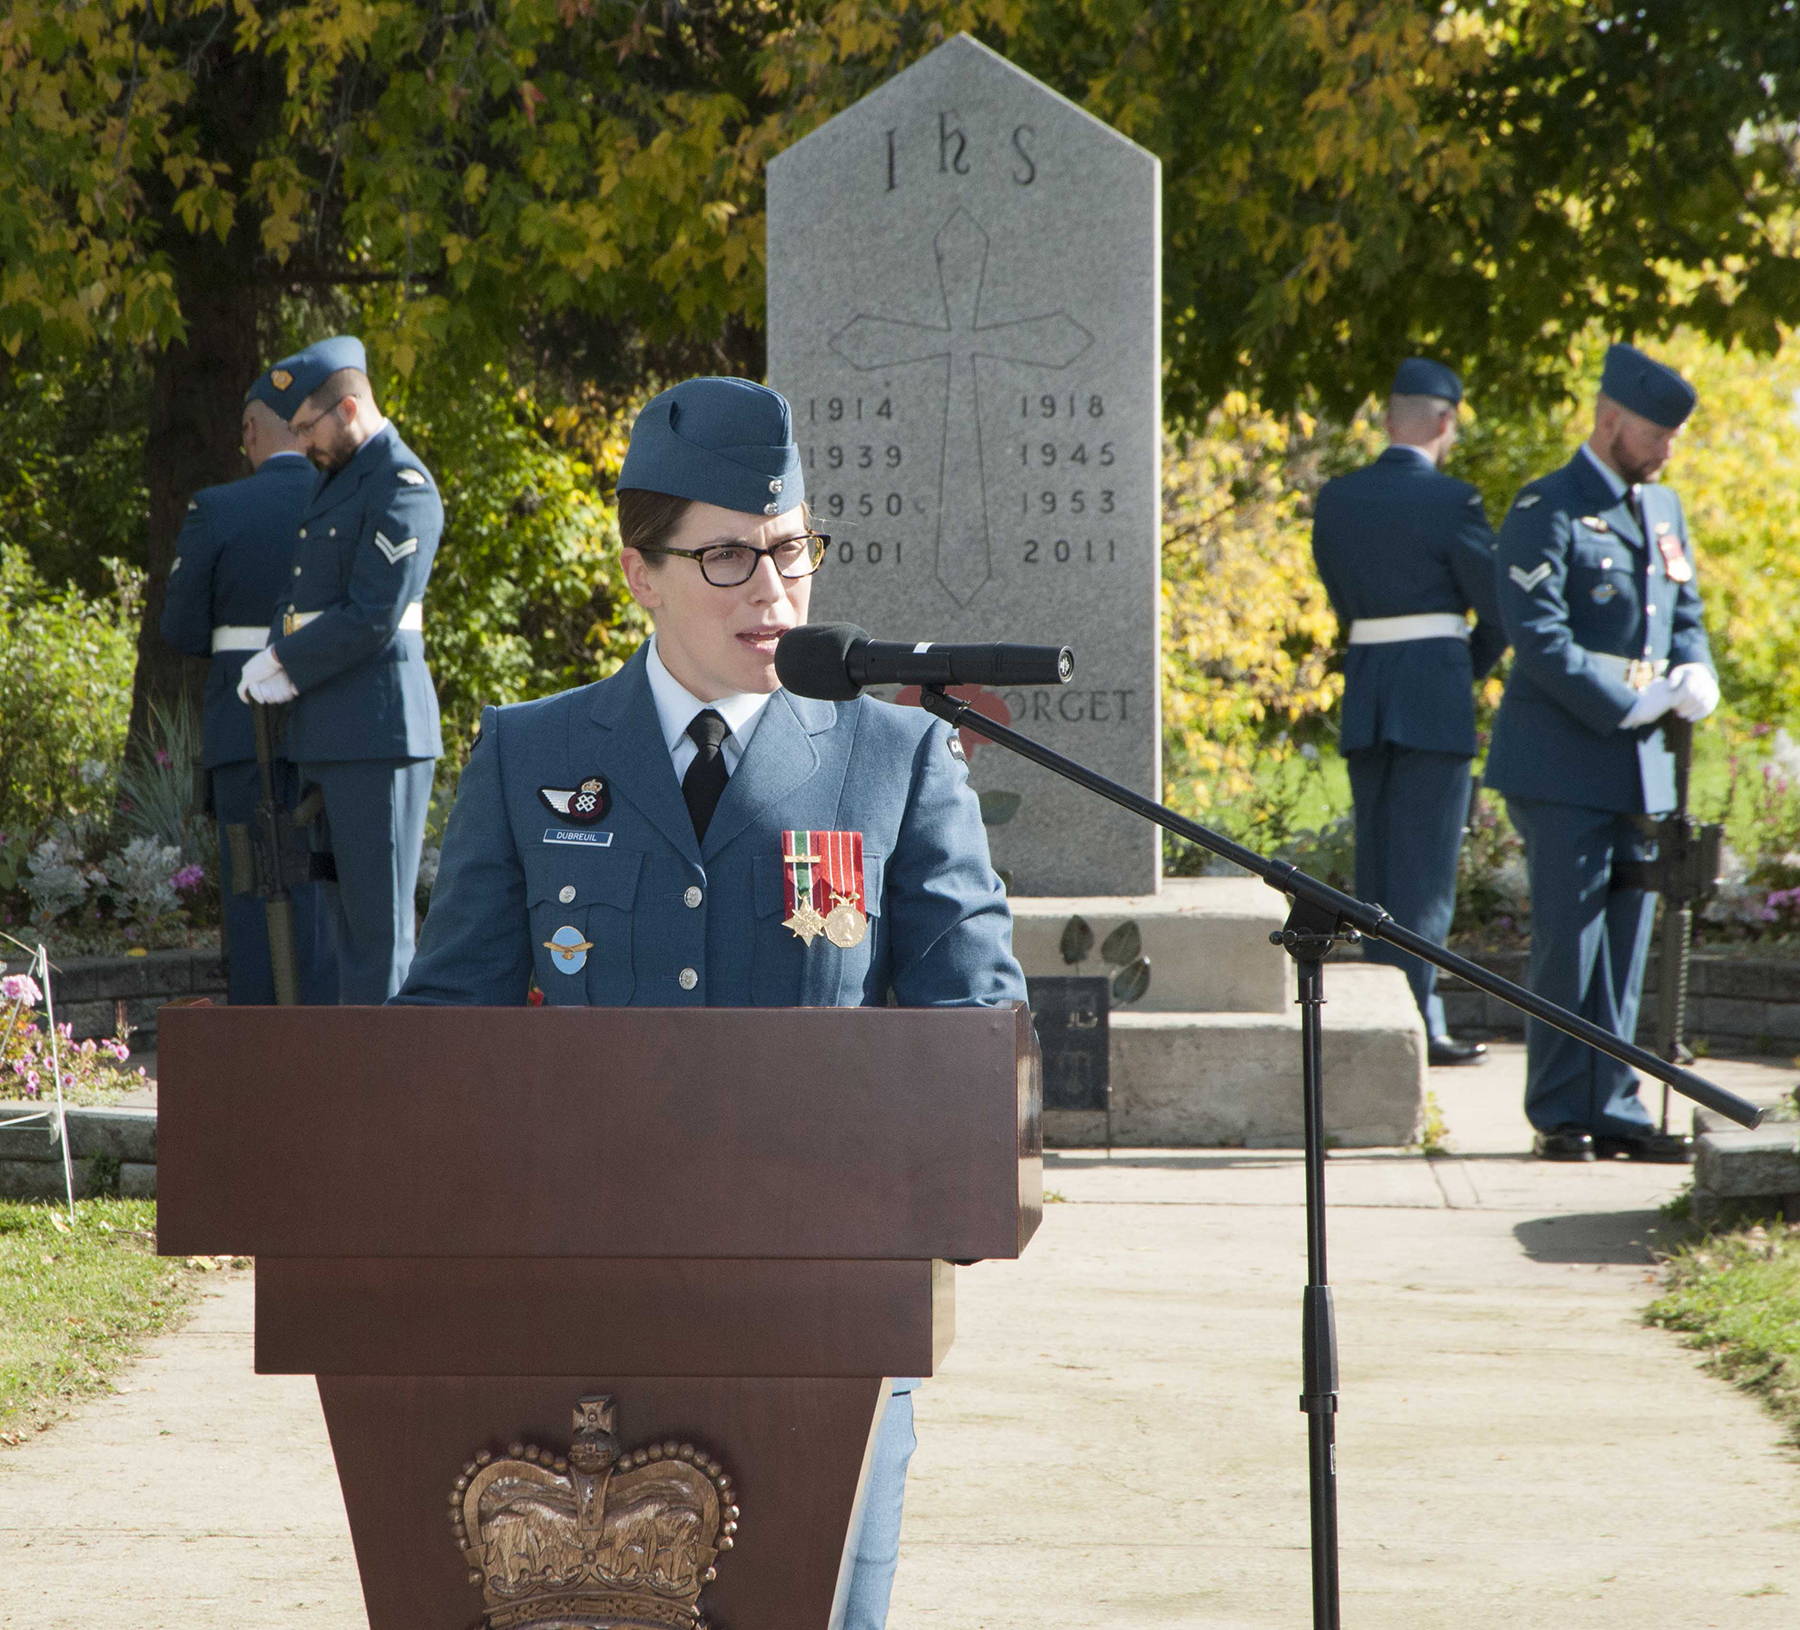 On September 15, 2019, Lieutenant-Colonel Kirsten Dubreuil, acting wing commander of 4 Wing Cold Lake, Alberta, addresses attendees of the ceremony held at the Cold Lake Legion Cenotaph to mark the 79th Anniversary of the Battle of Britain. PHOTO: Master Corporal Shane Rudderham, CK06-2019-0753-030